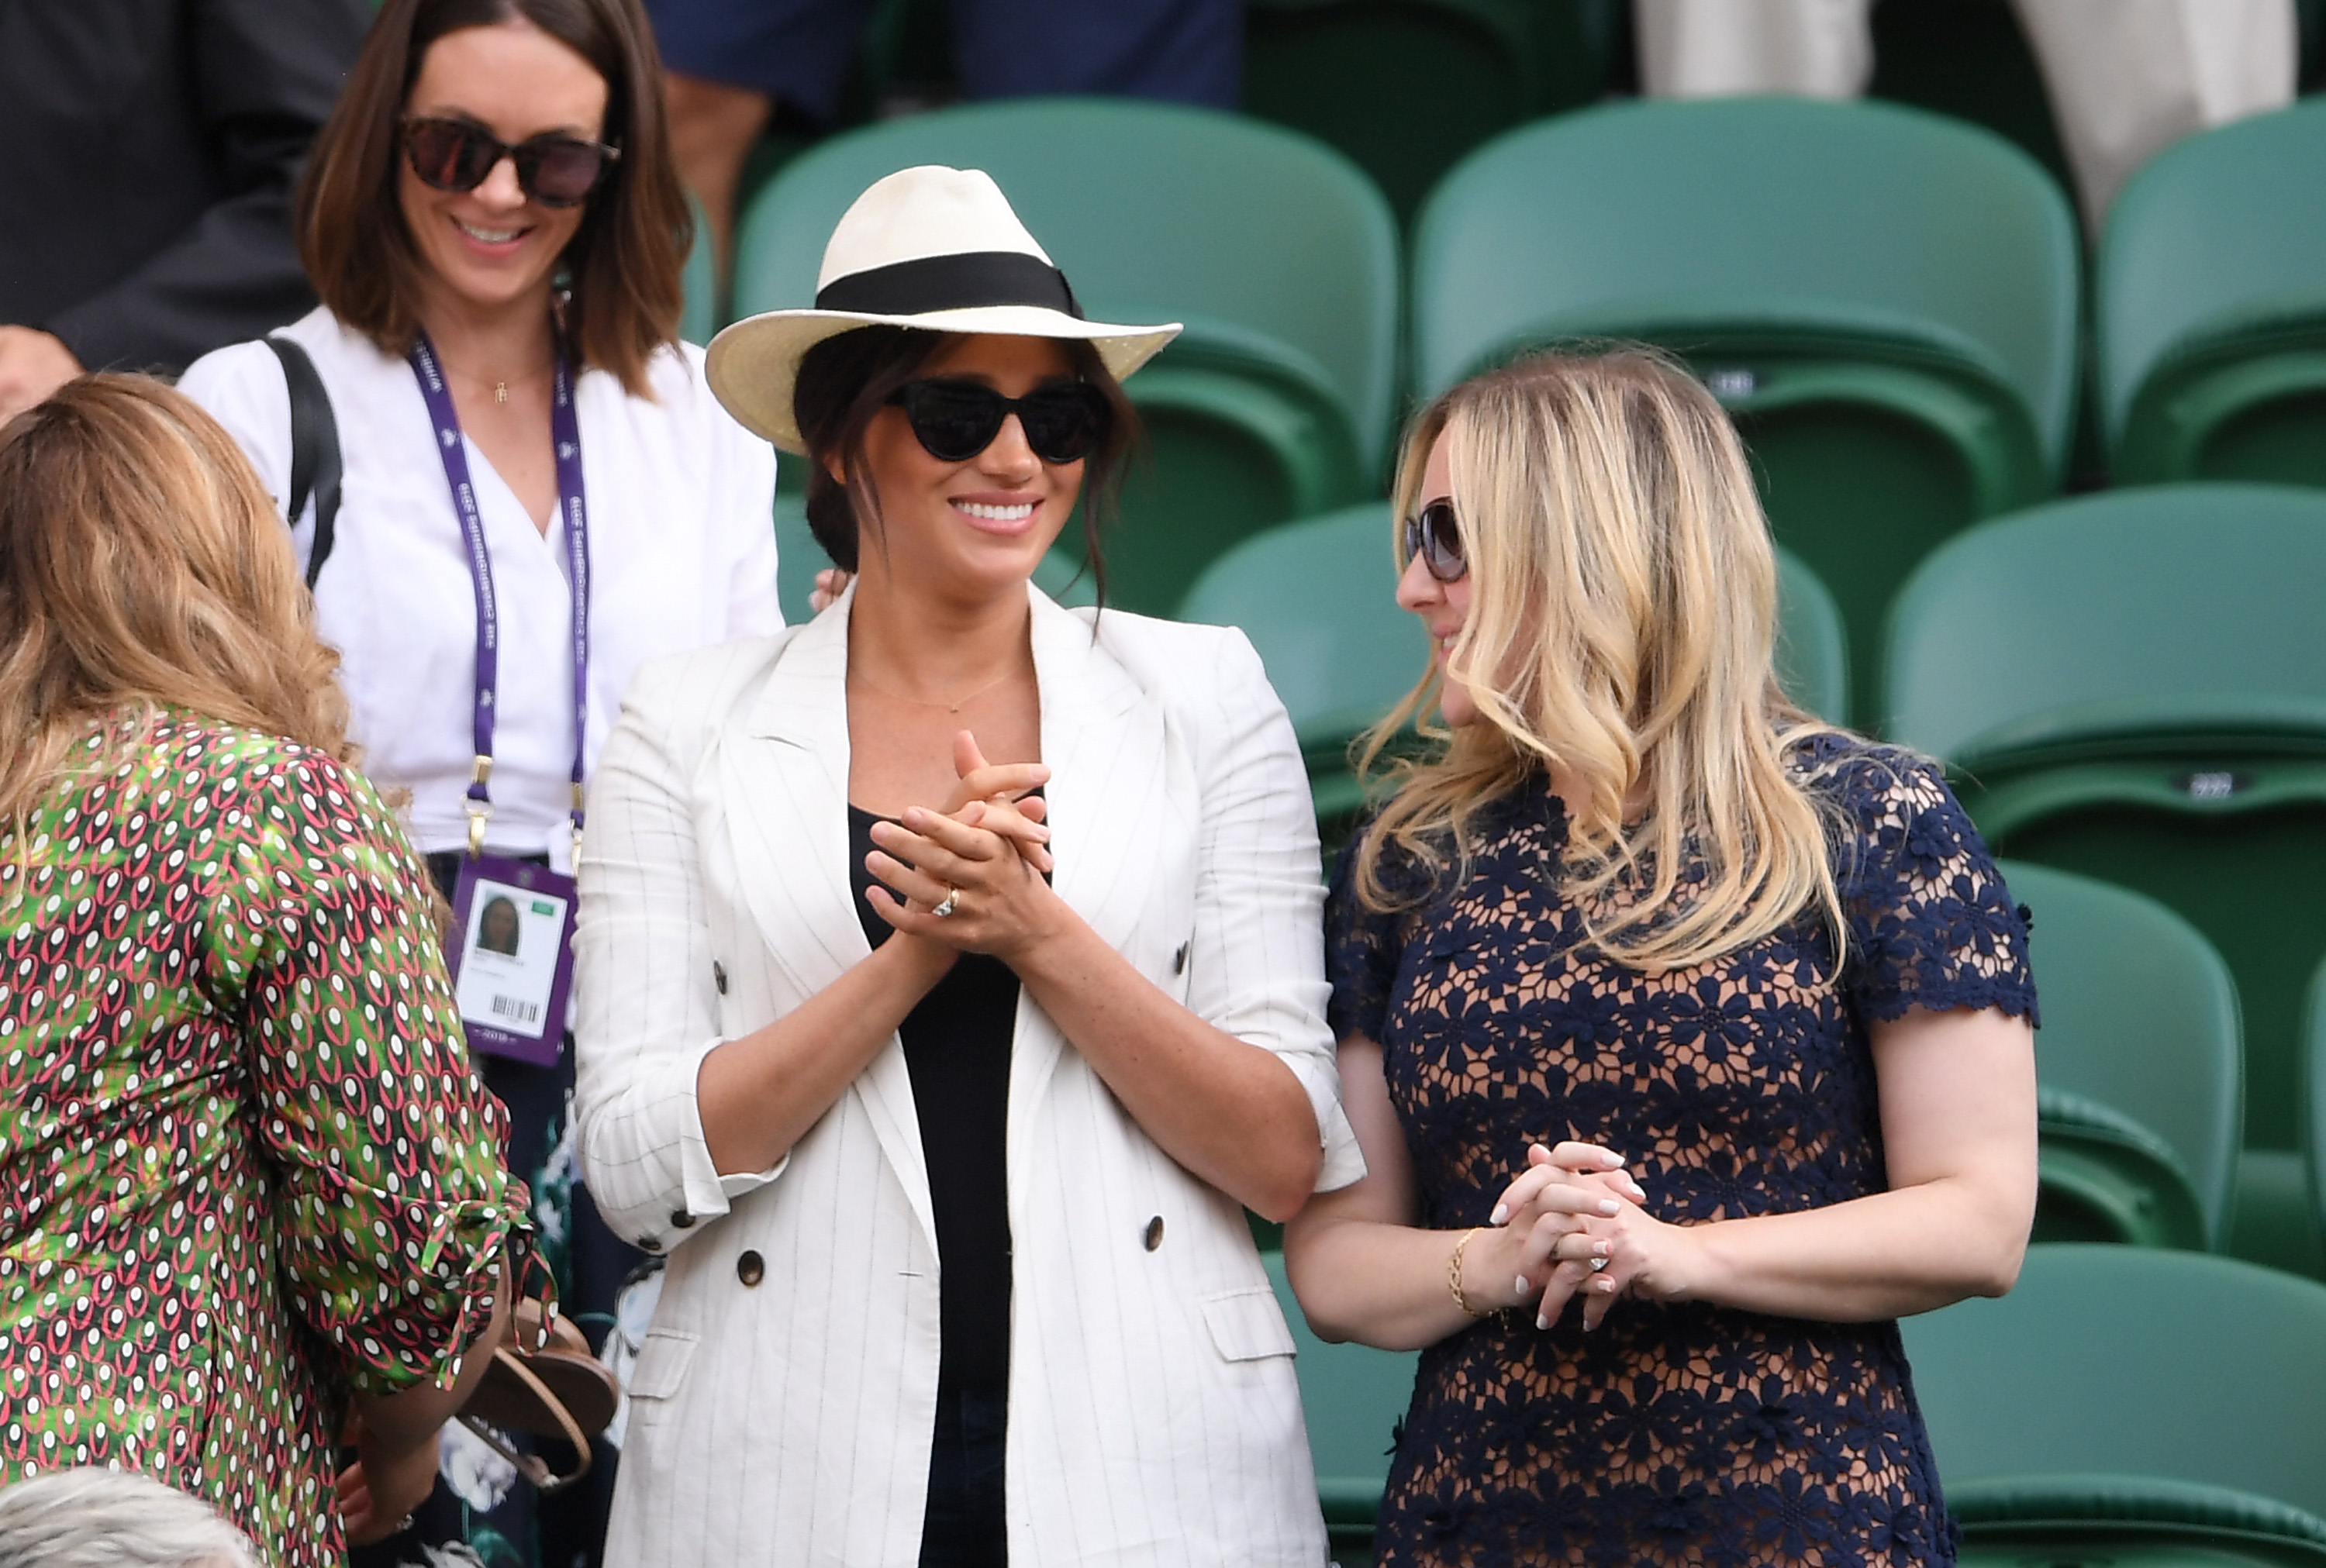 Meghan Markle, Duchess of Sussex watches on during the ladies' Singles Second round match between Serena Williams of The United States and Kaja Juvan of Slovenia during Day four of The Championships - Wimbledon 2019 at All England Lawn Tennis and Croquet Club on July 04, 2019 in London, England. (Photo by Laurence Griffiths/Getty Images)